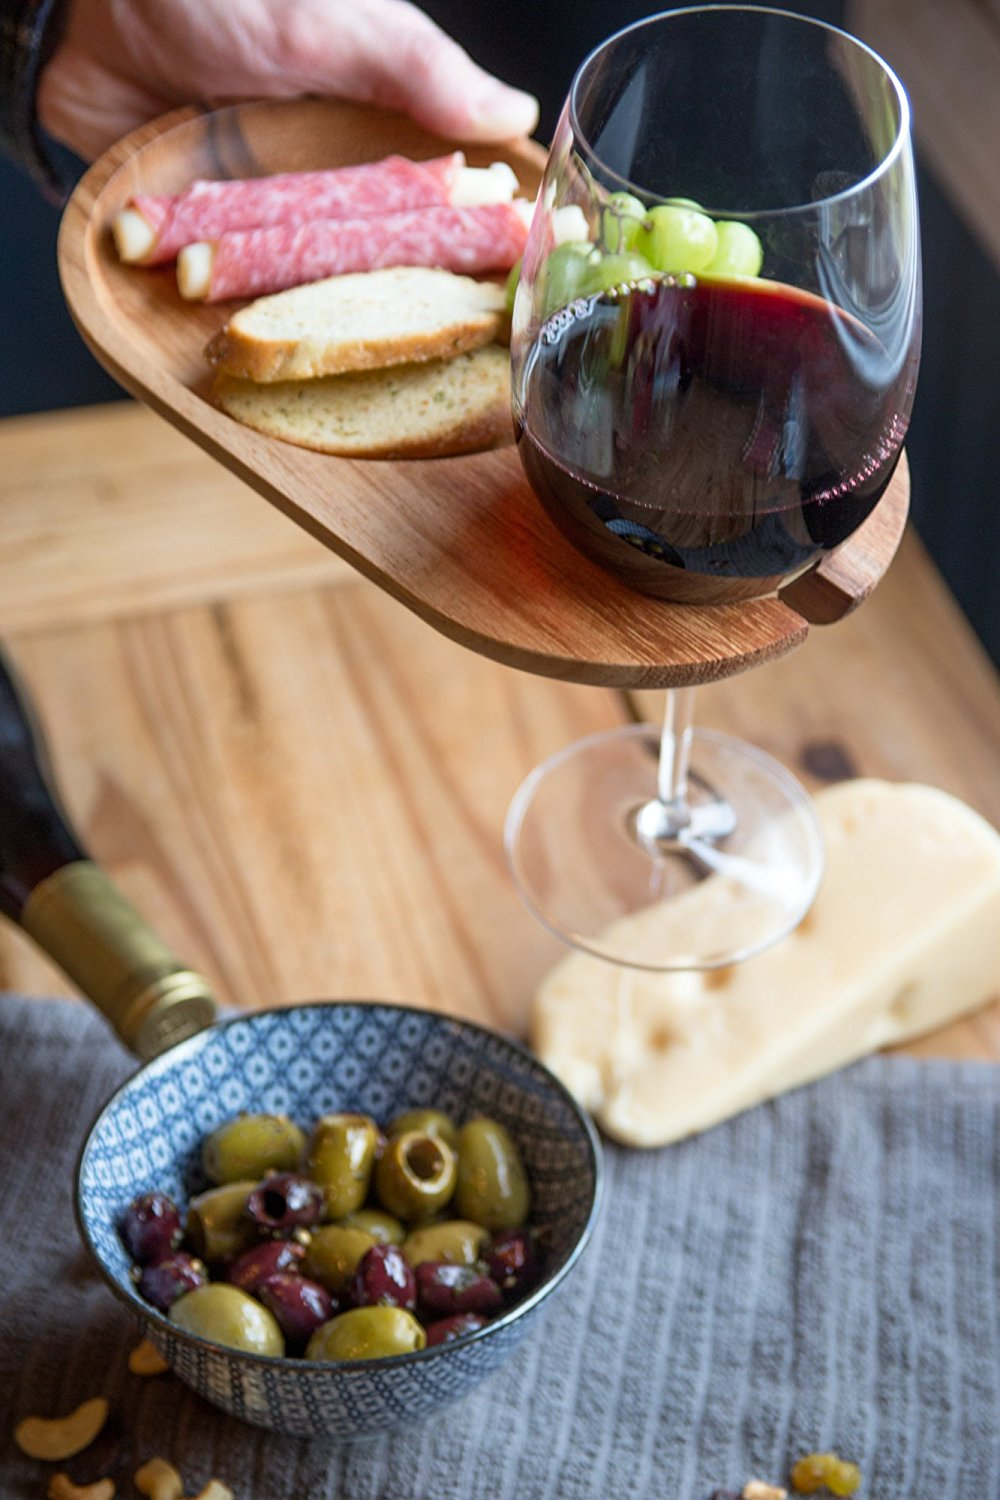 This compact appetizer plate will help your guests take care of their wine and appetizers in one convenient unit. - $